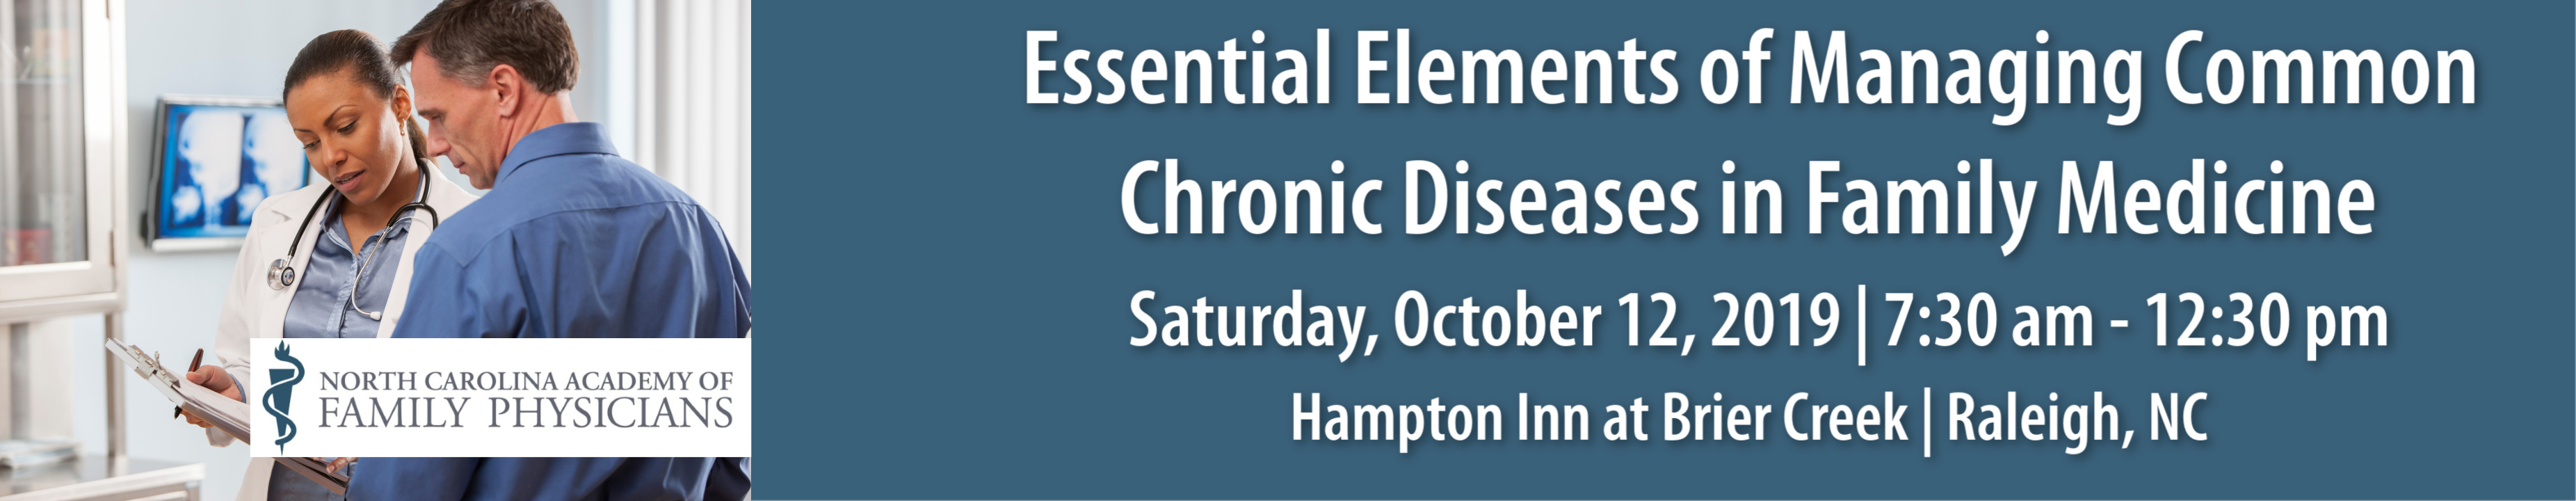 Essential Elements of Managing Common Chronic Diseases in Family Medicine